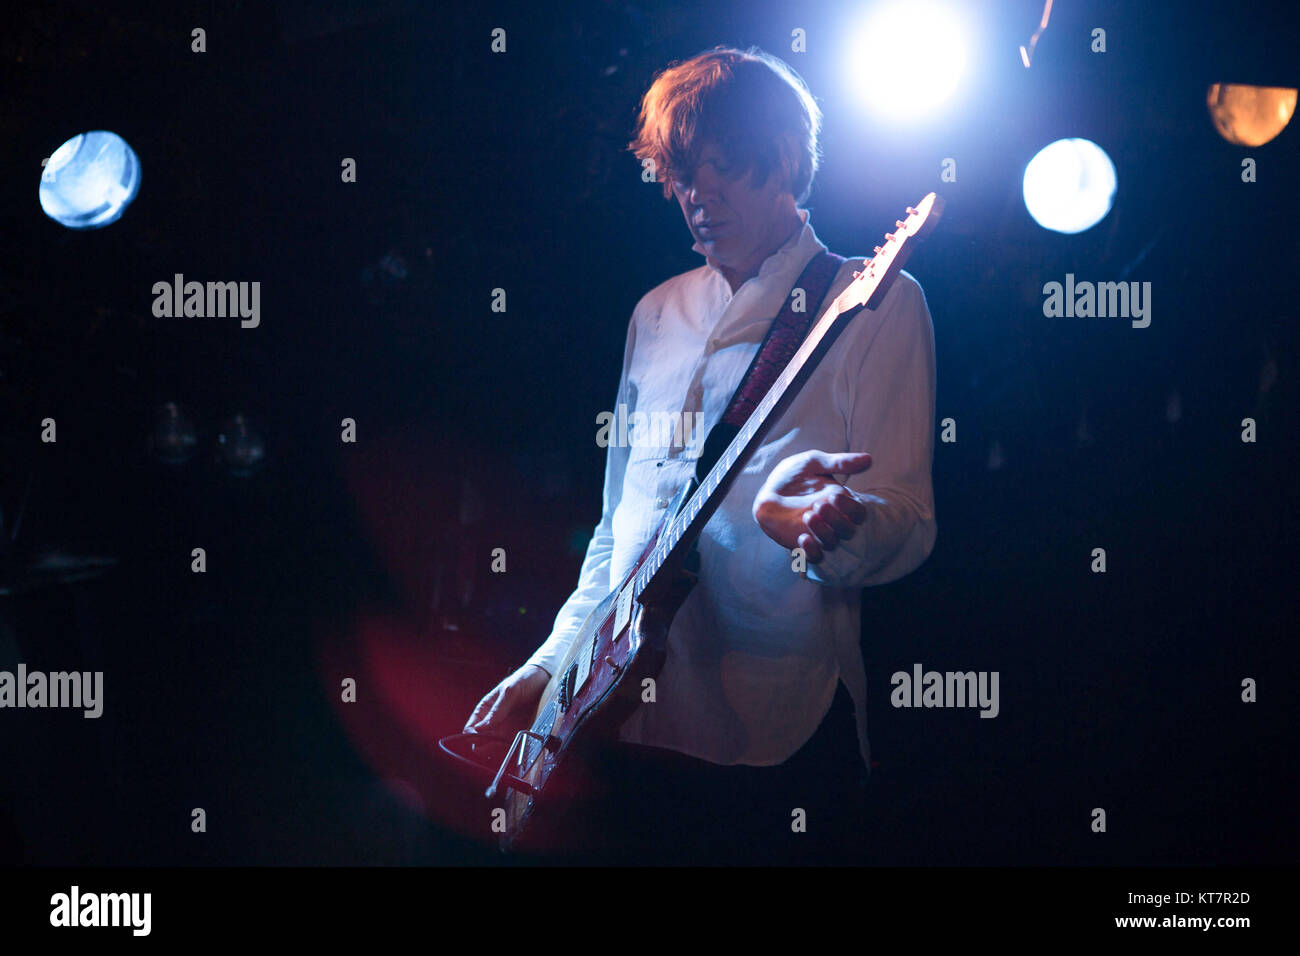 The American singer, songwriter and musician Thurston Moore is best known as the singer and guitarist of the rock Stock Photo